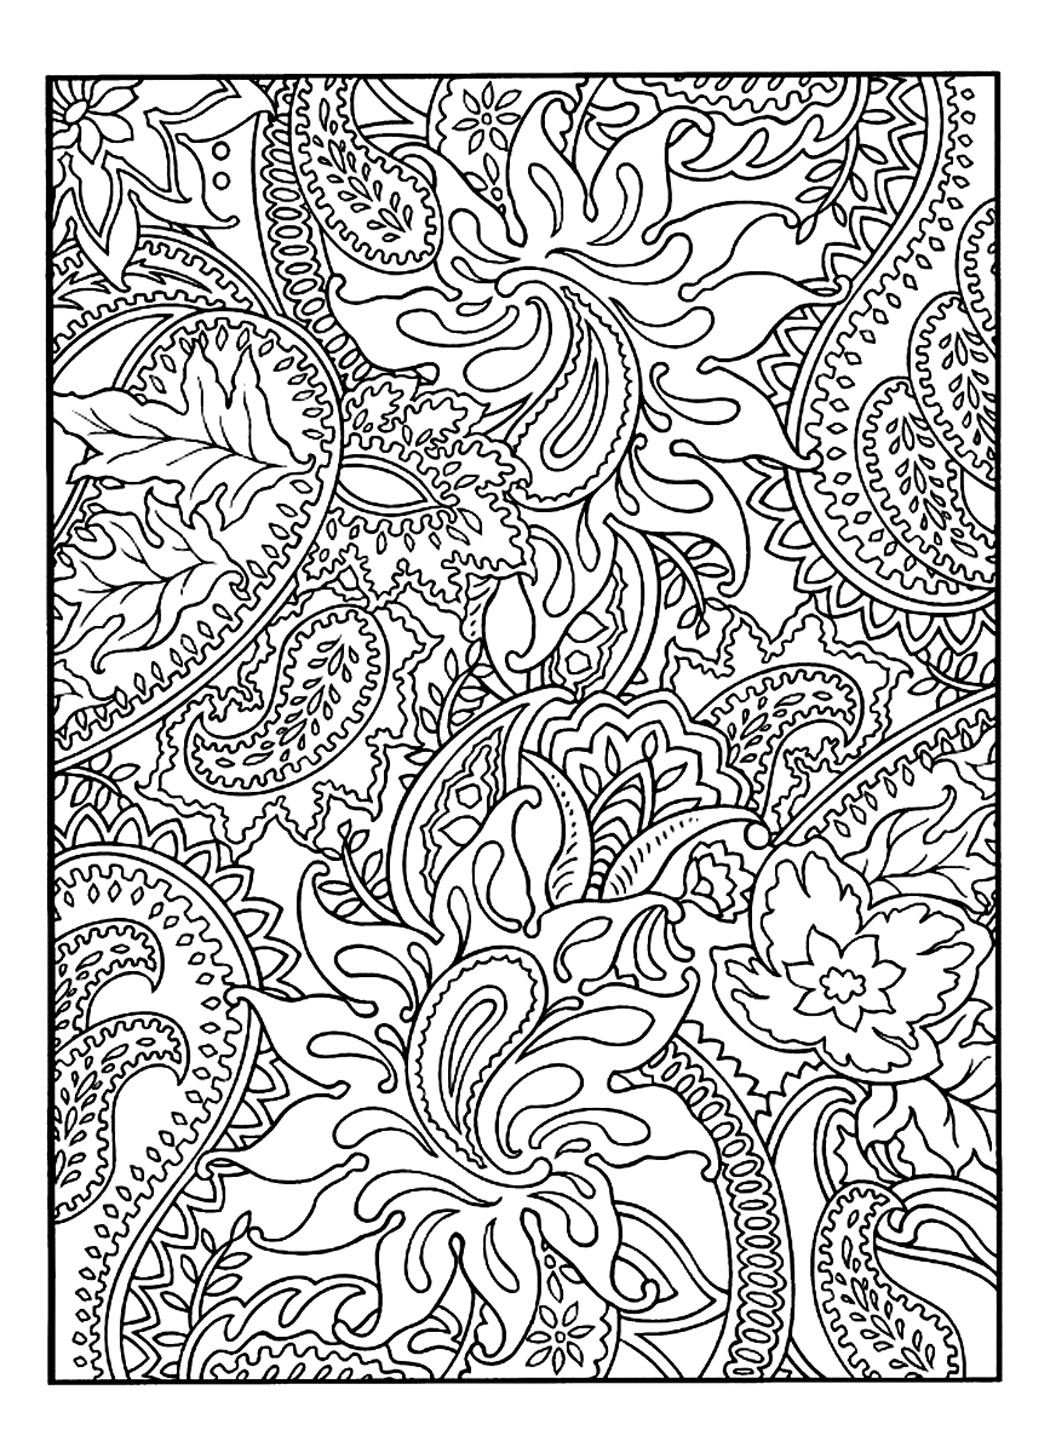 Drawing to colour full of flowers & leaves | From the gallery : Flowers And Vegetation